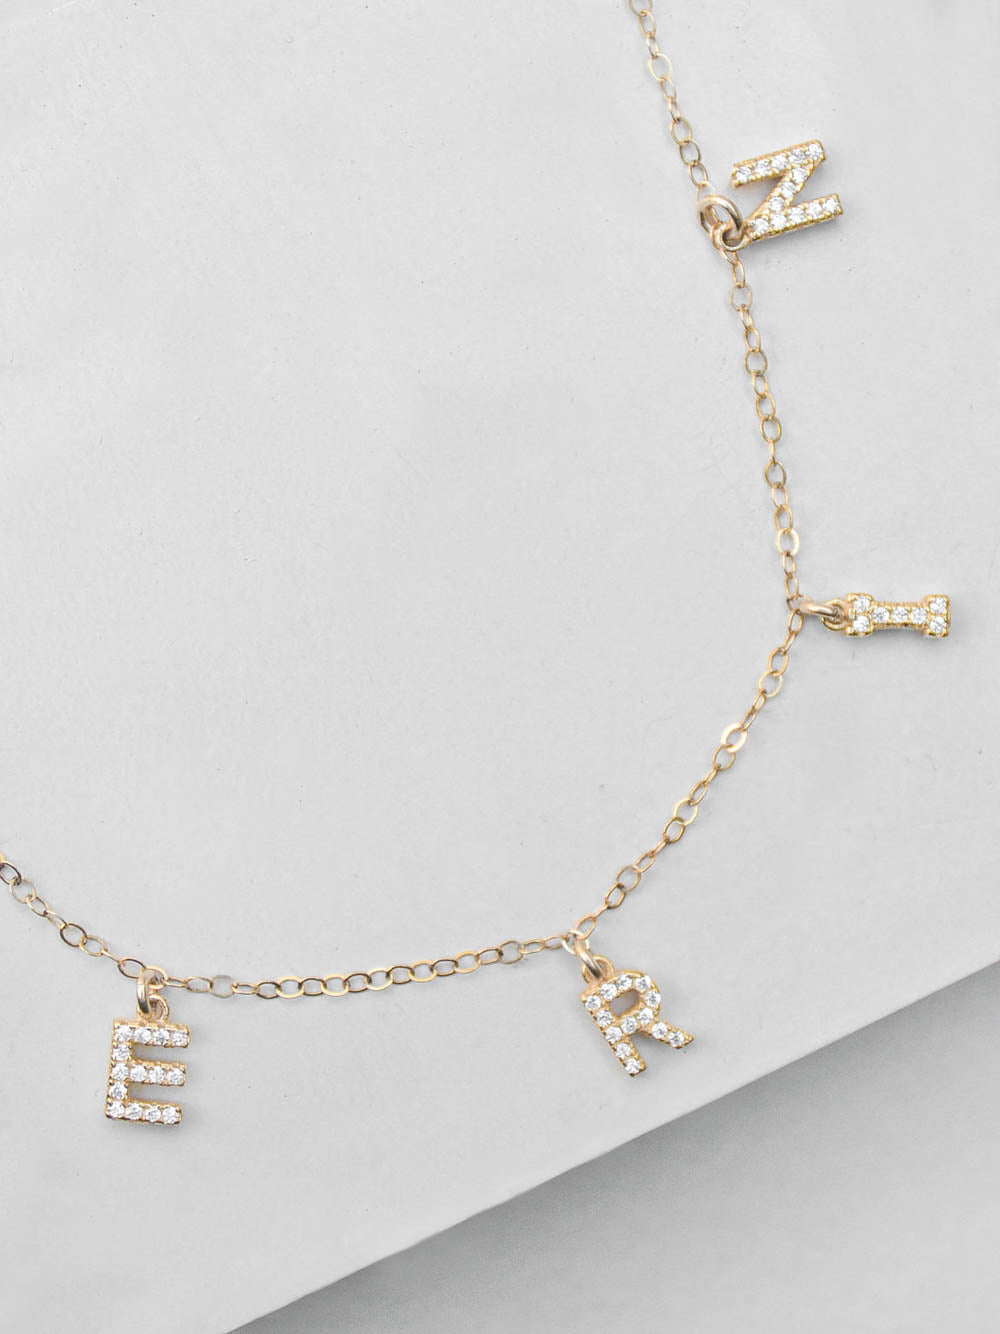 Gold CZ Initial Name Necklace by The Faint Hearted Jewelry